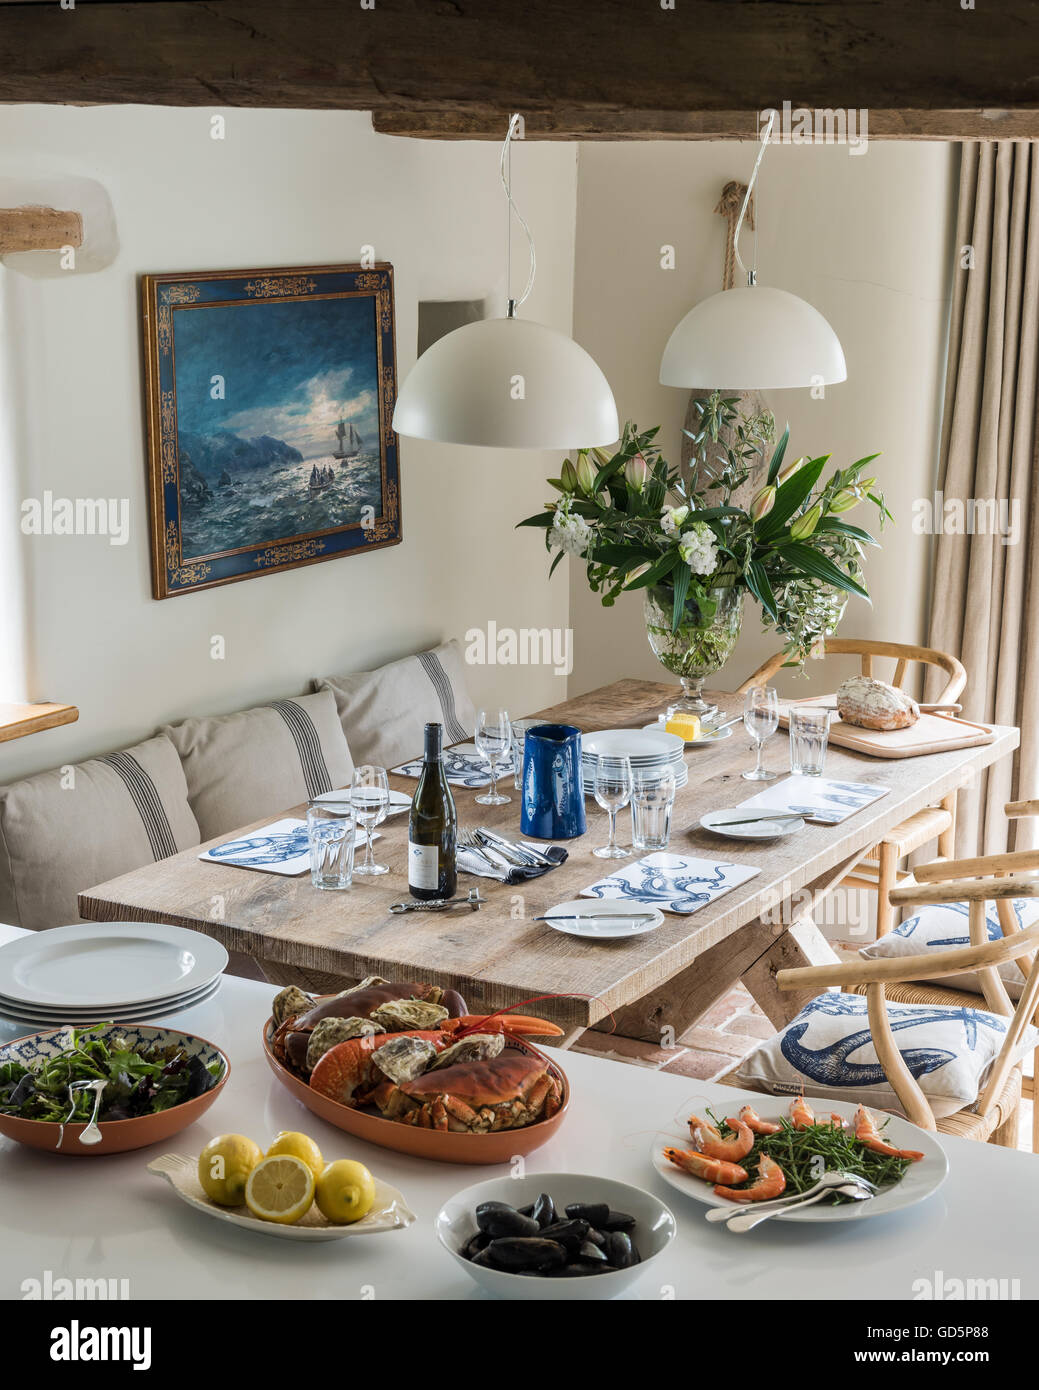 Seafood feast laid out on worktop by laid dining table - Stock Image